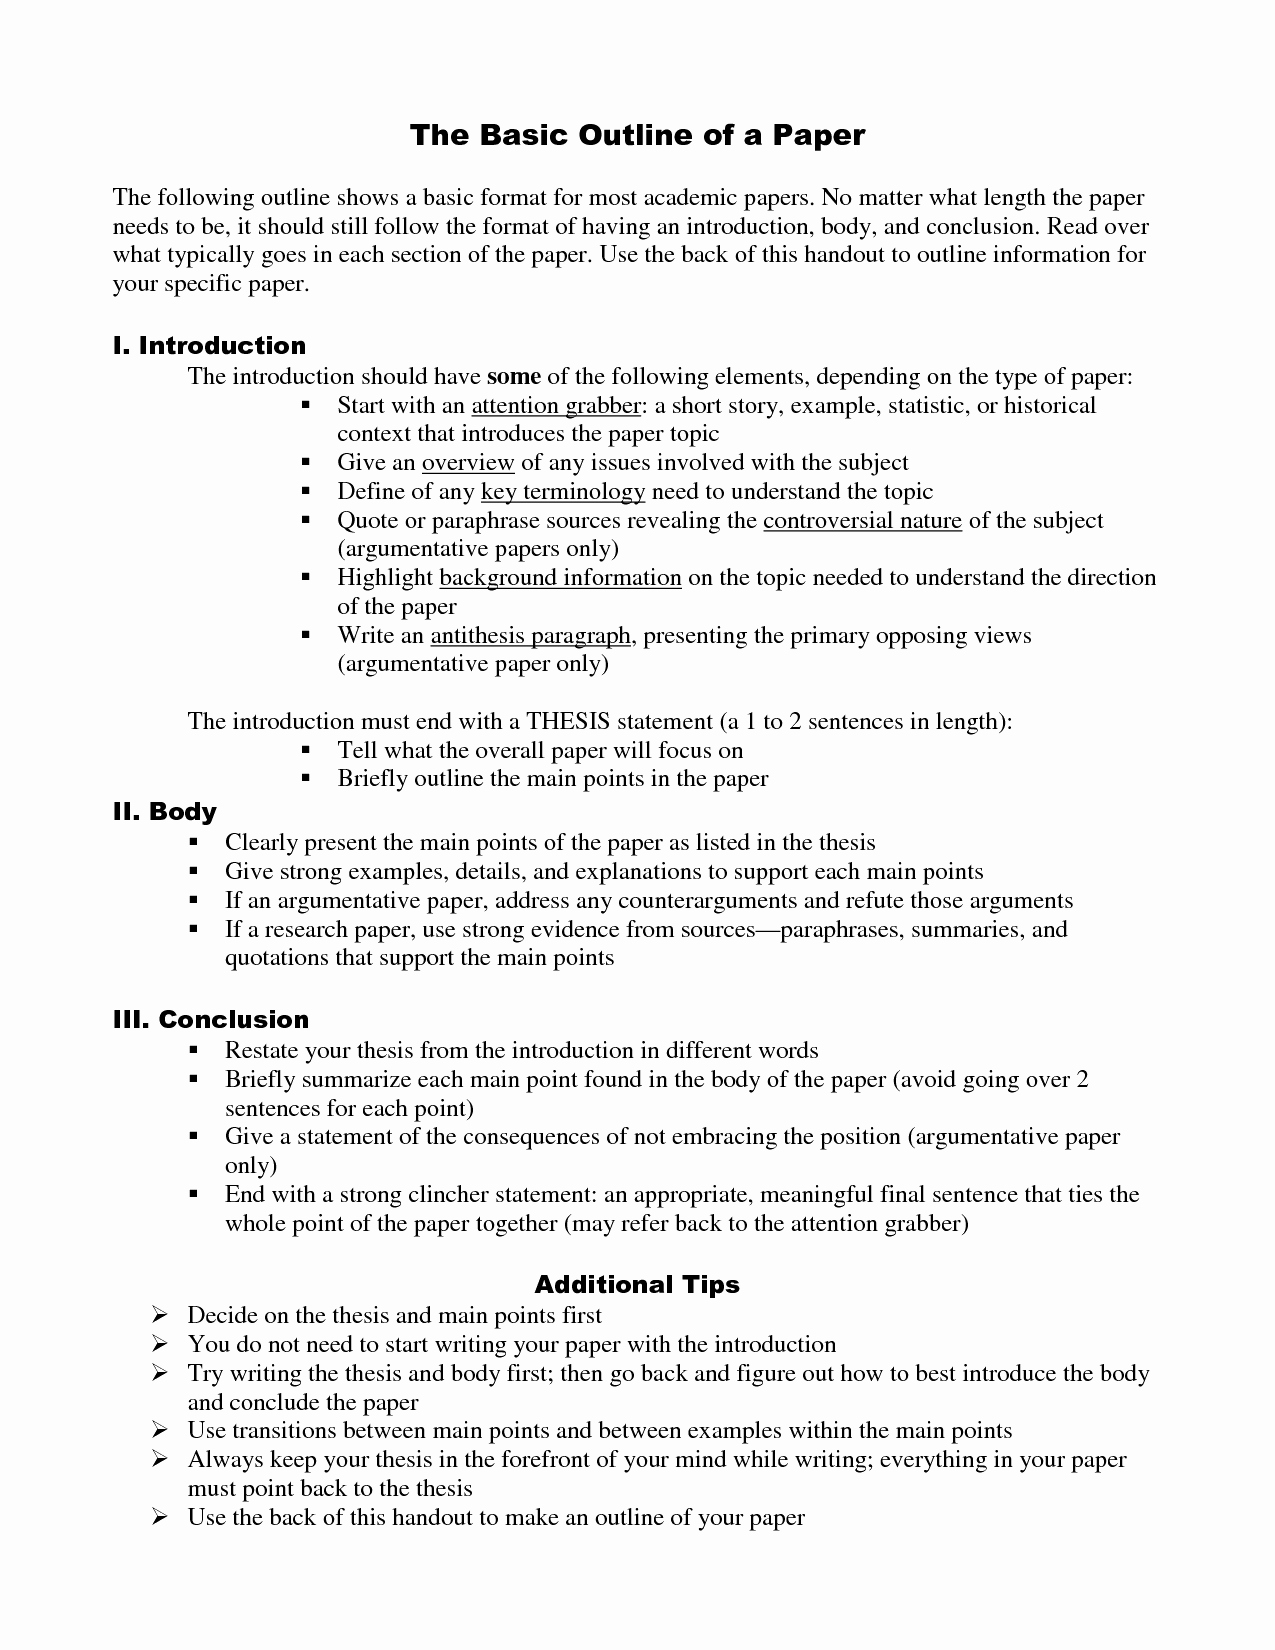 018 Inspirational Essays Character Analysis Essay Template Fresh The Yellow Wallpaper English Of Breathtaking In Hindi About Life And Struggles Fathers Full